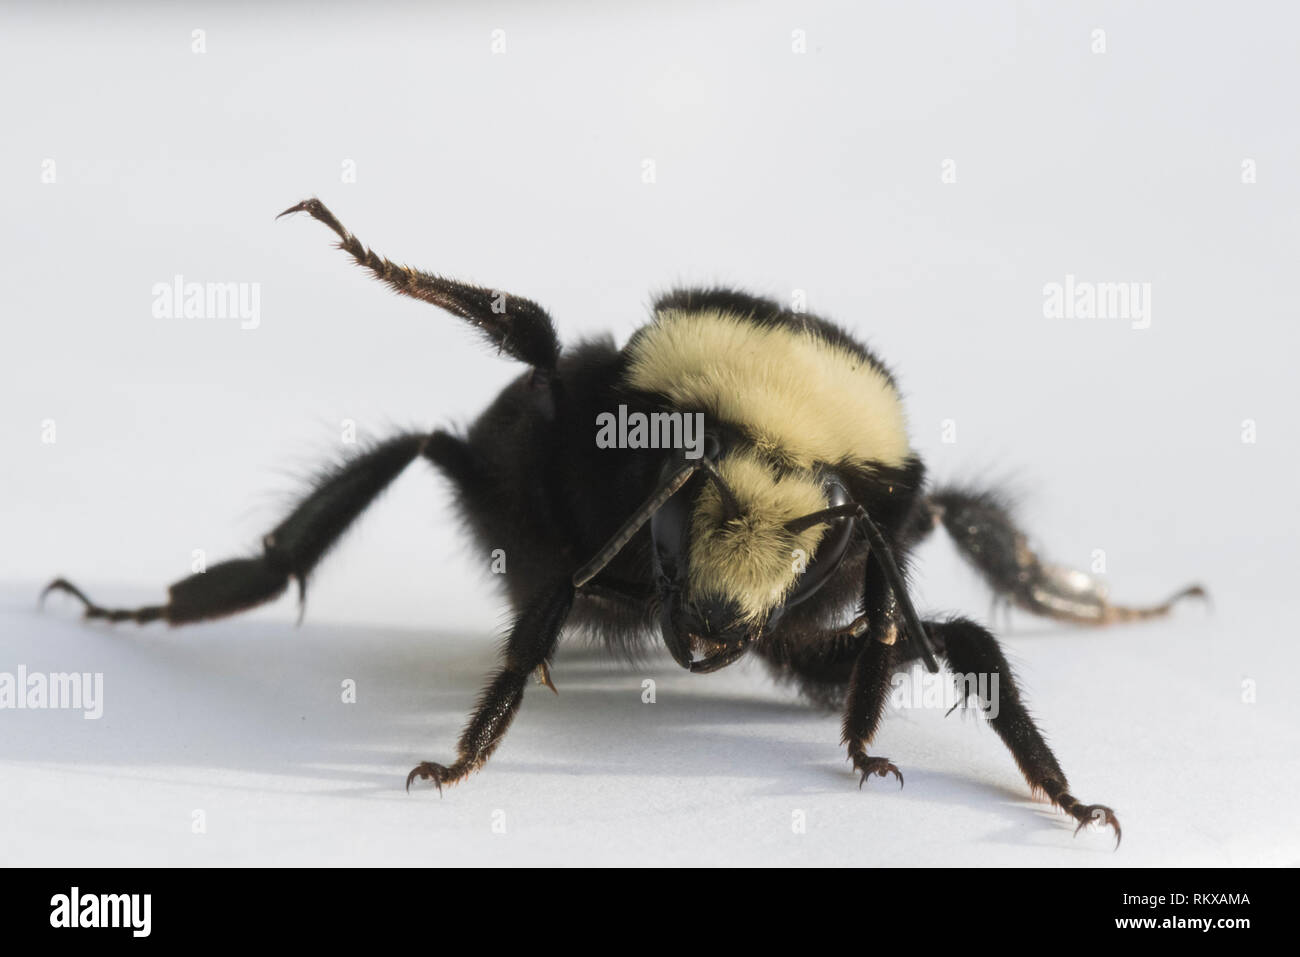 Yellow-faced Bumblebee (Bombus vosnesenskii) Queen - Stock Image